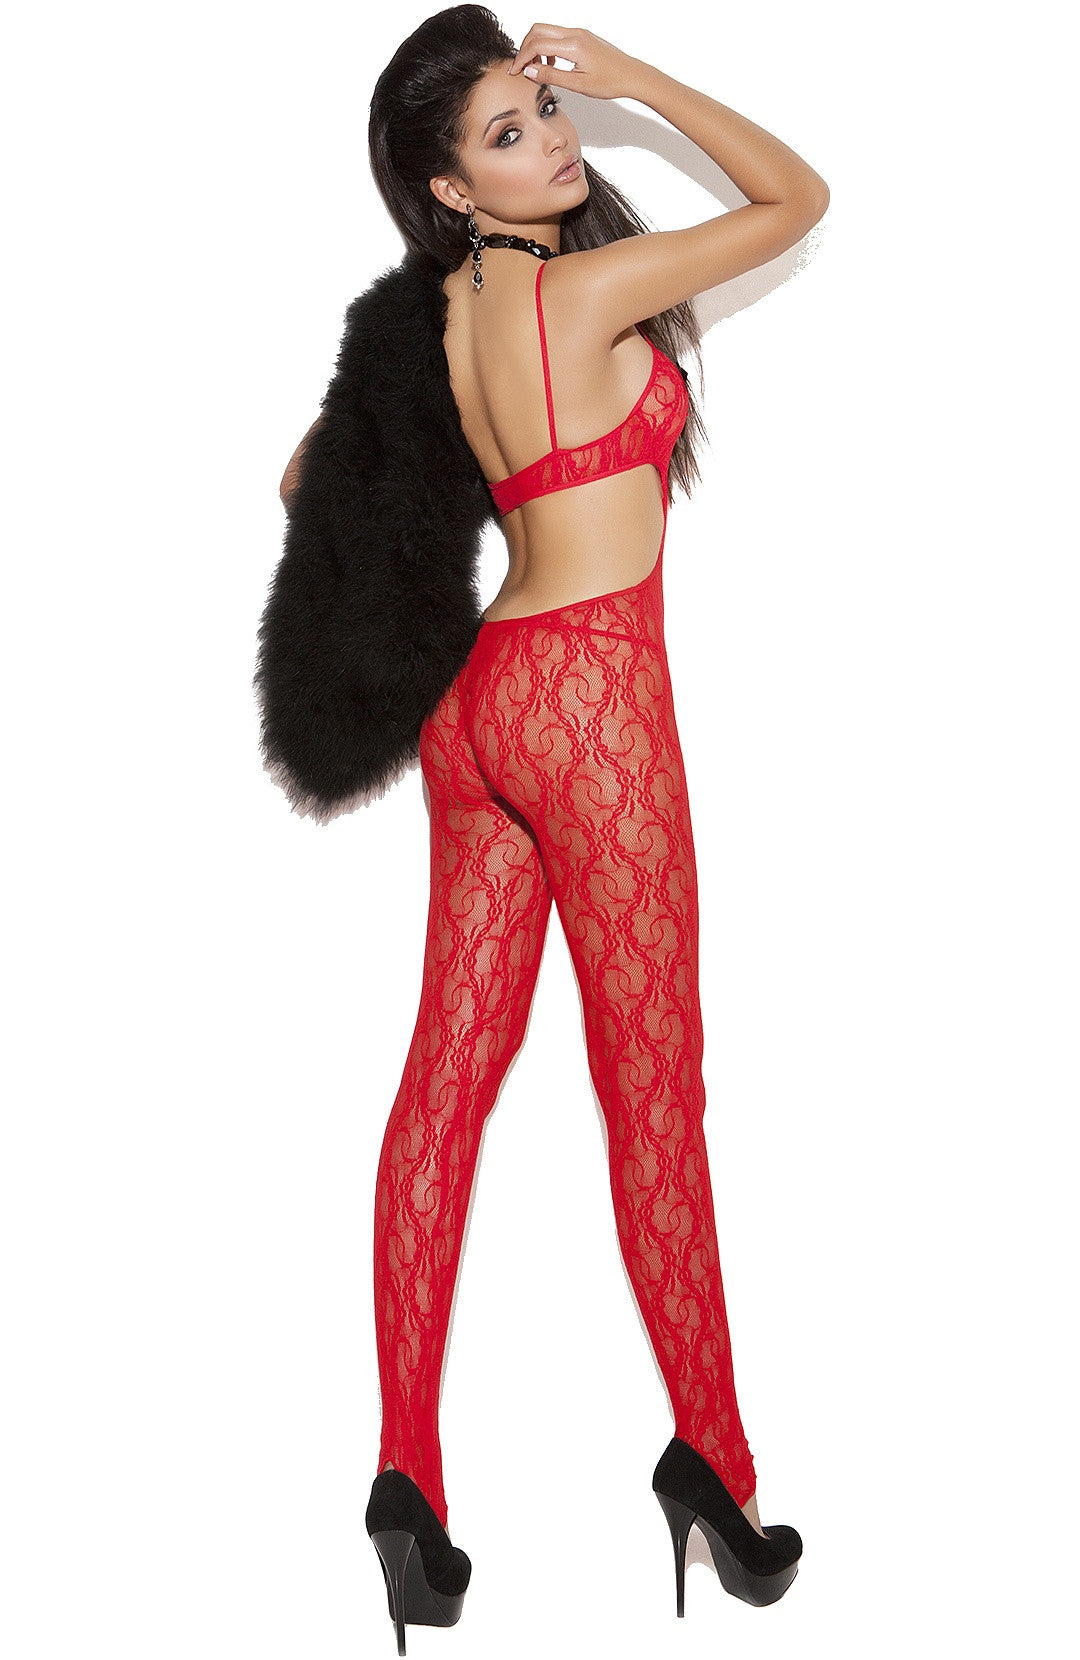 EM-8703 Red bodystocking - Sexylingerieland  - 2